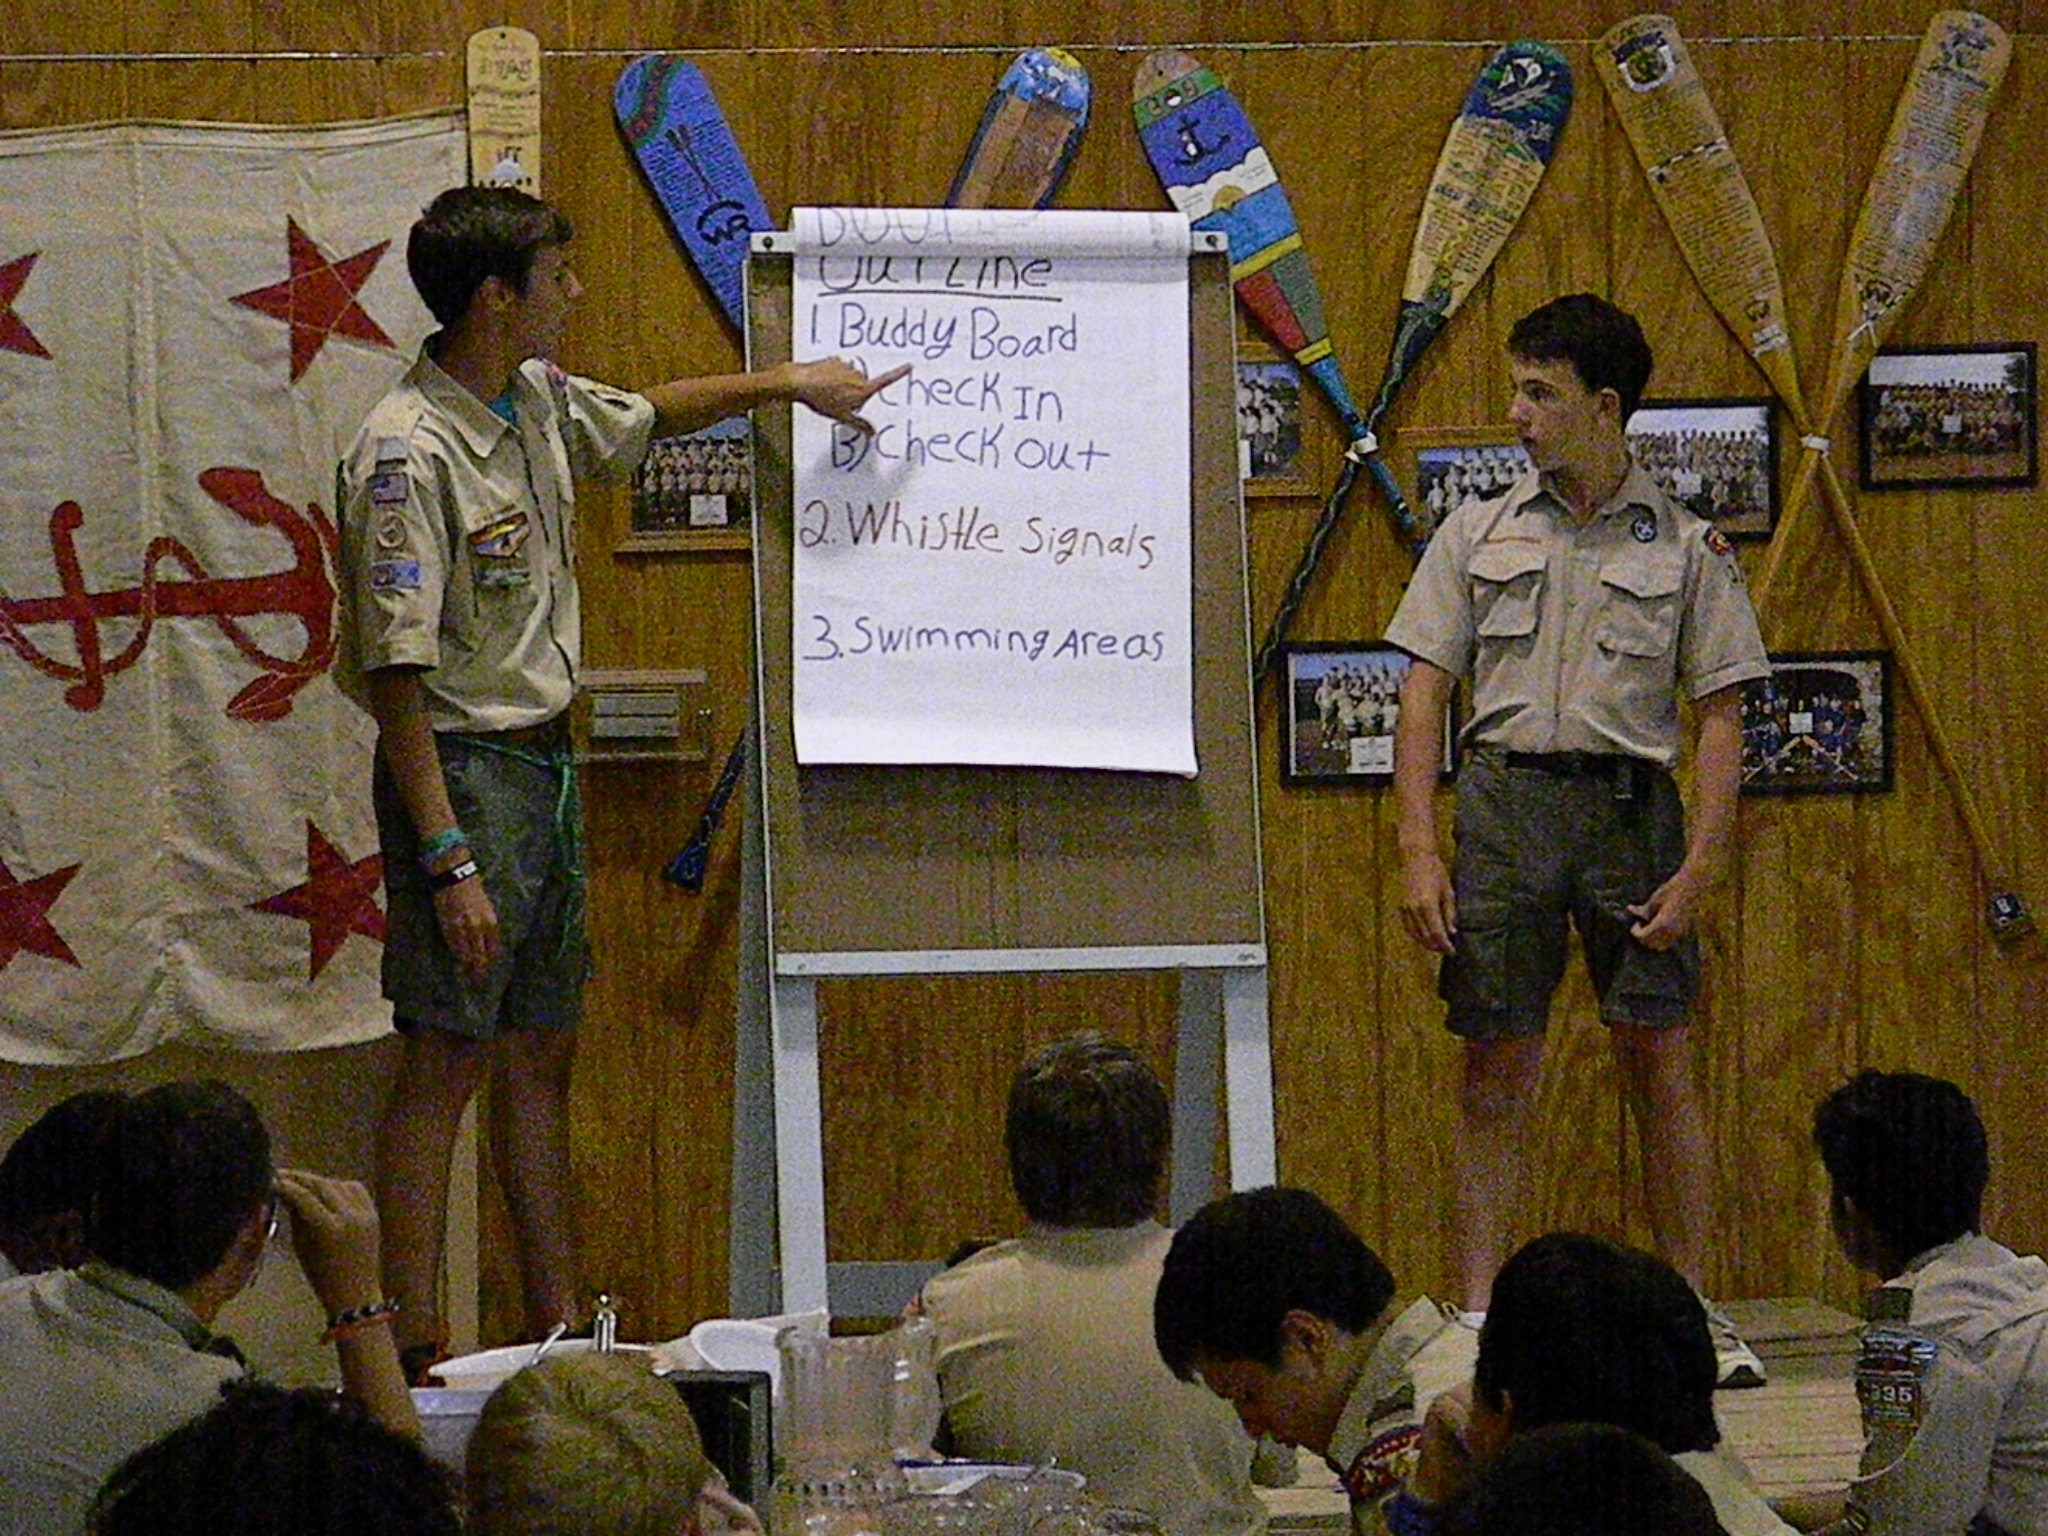 Scouts give presenation